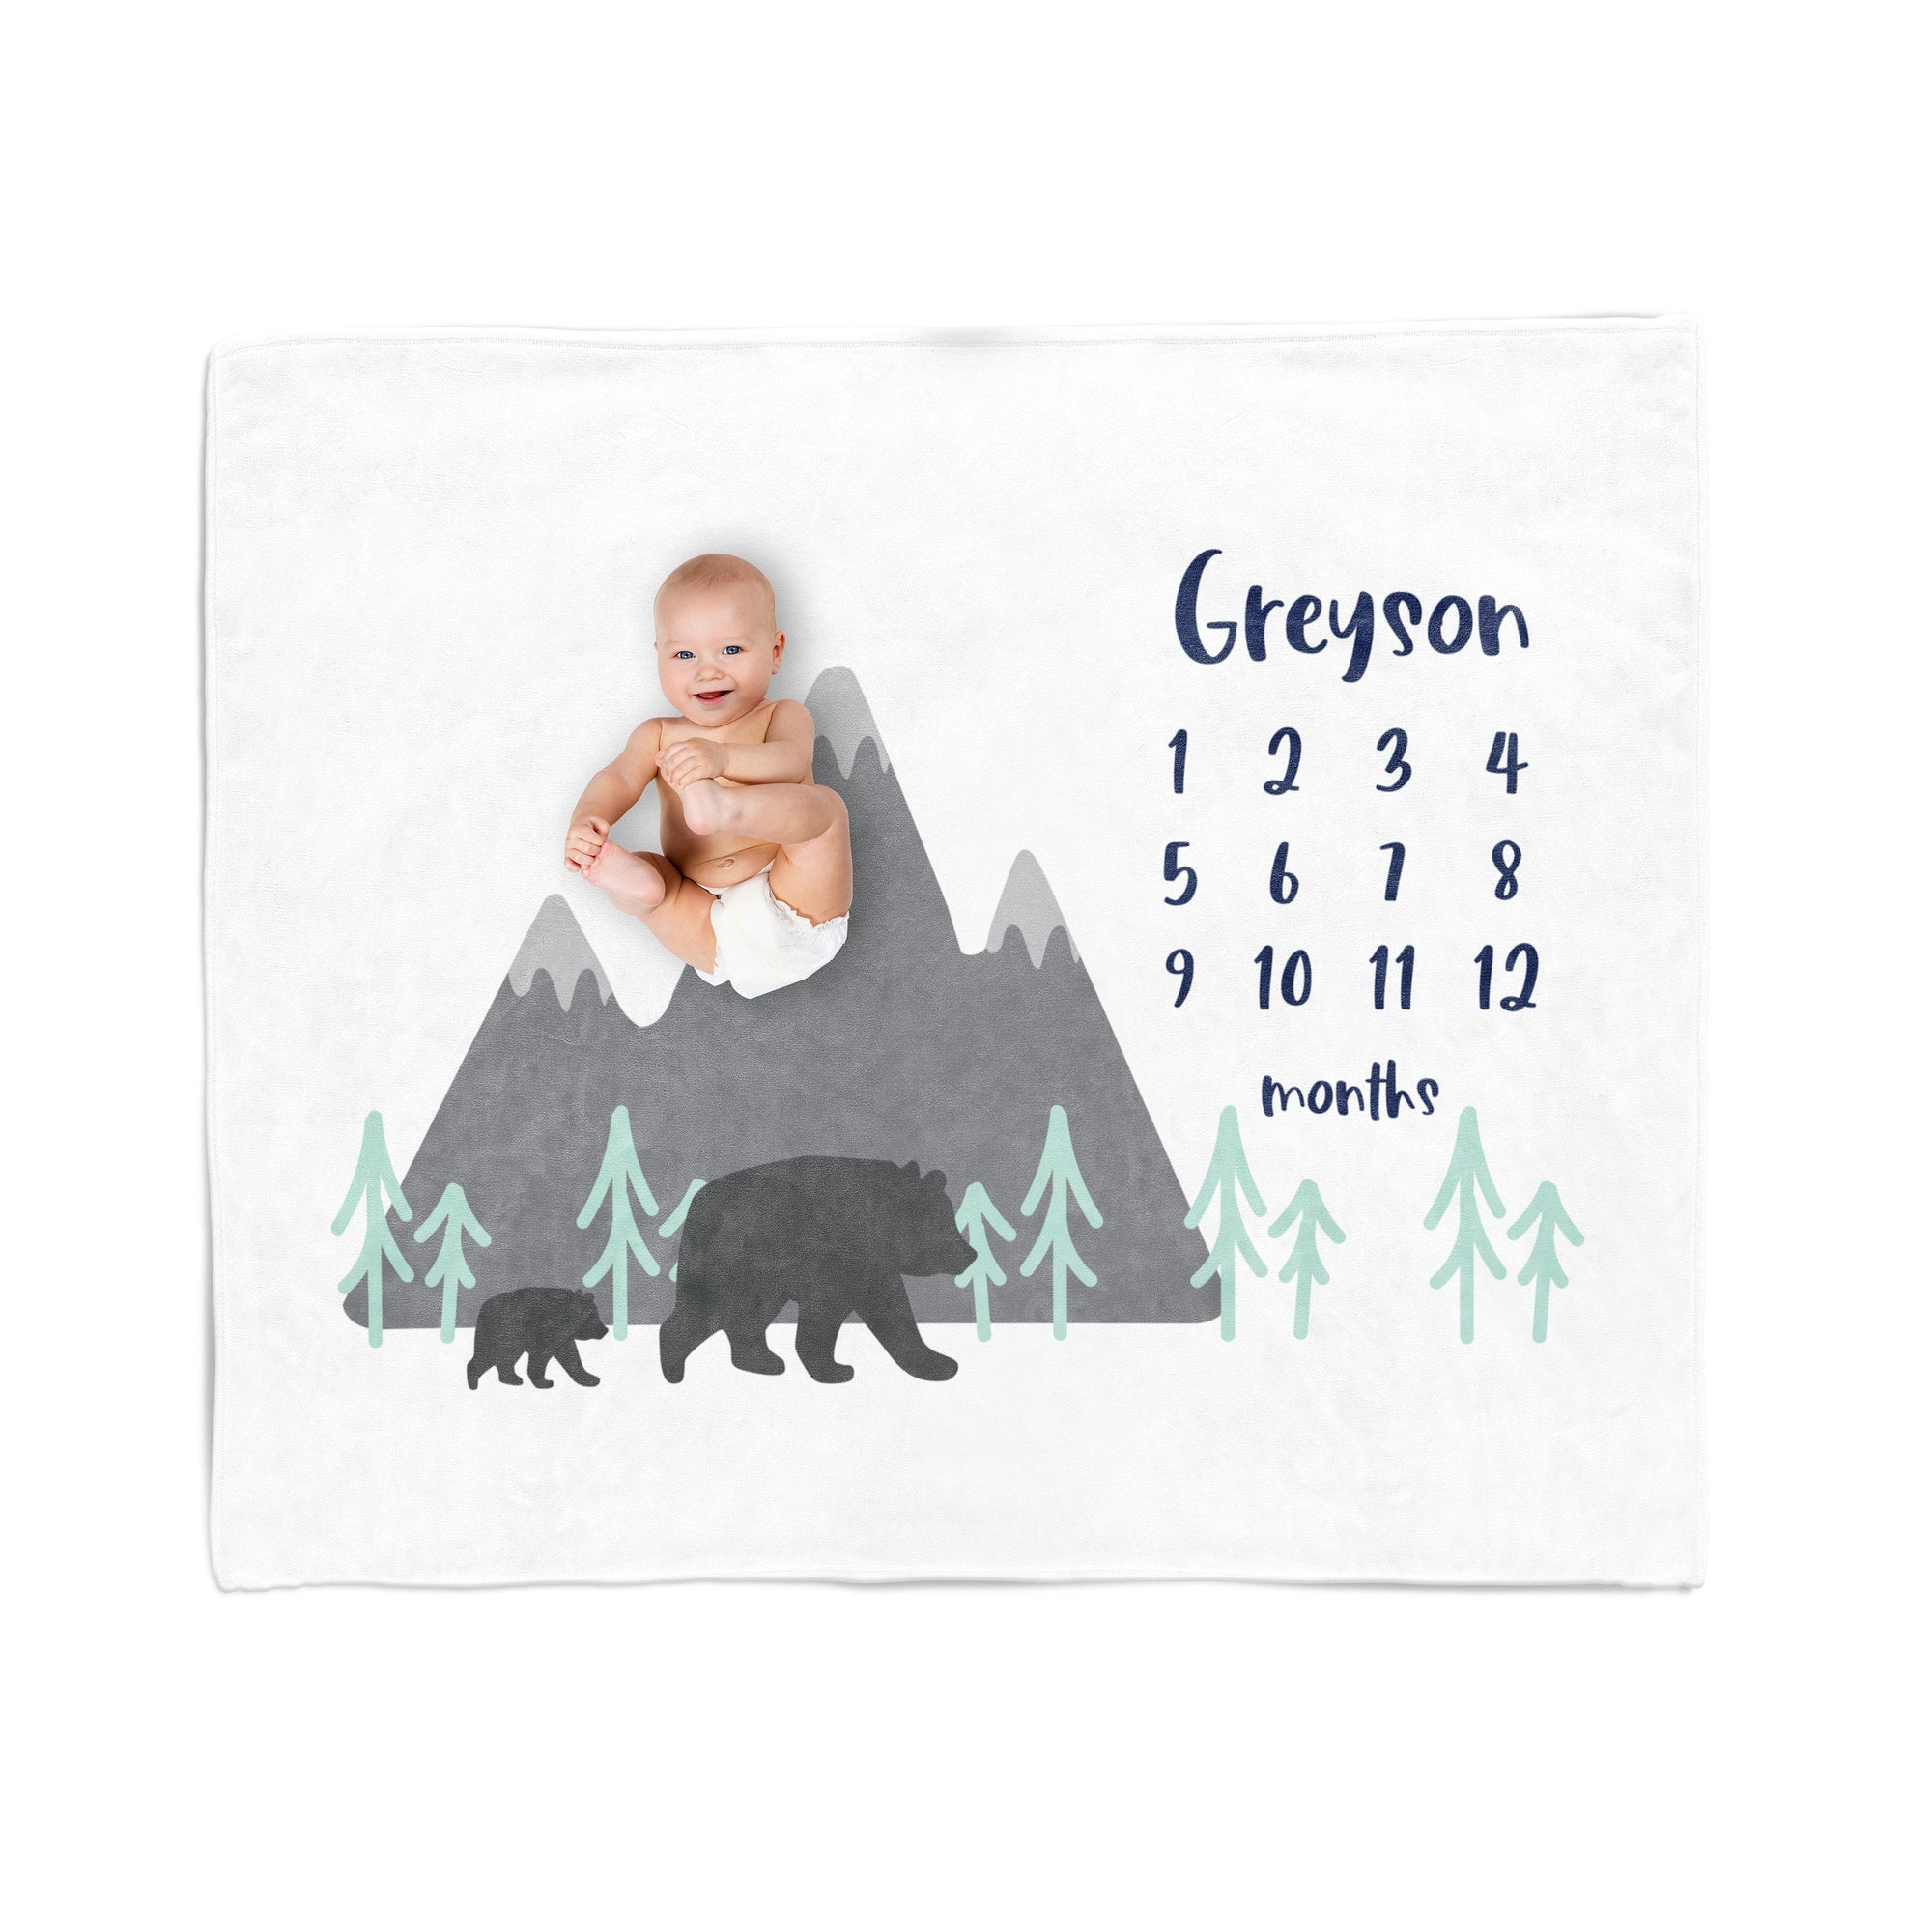 Personalized Milestone Blanket, Bear and Mountain, Minky Blanket